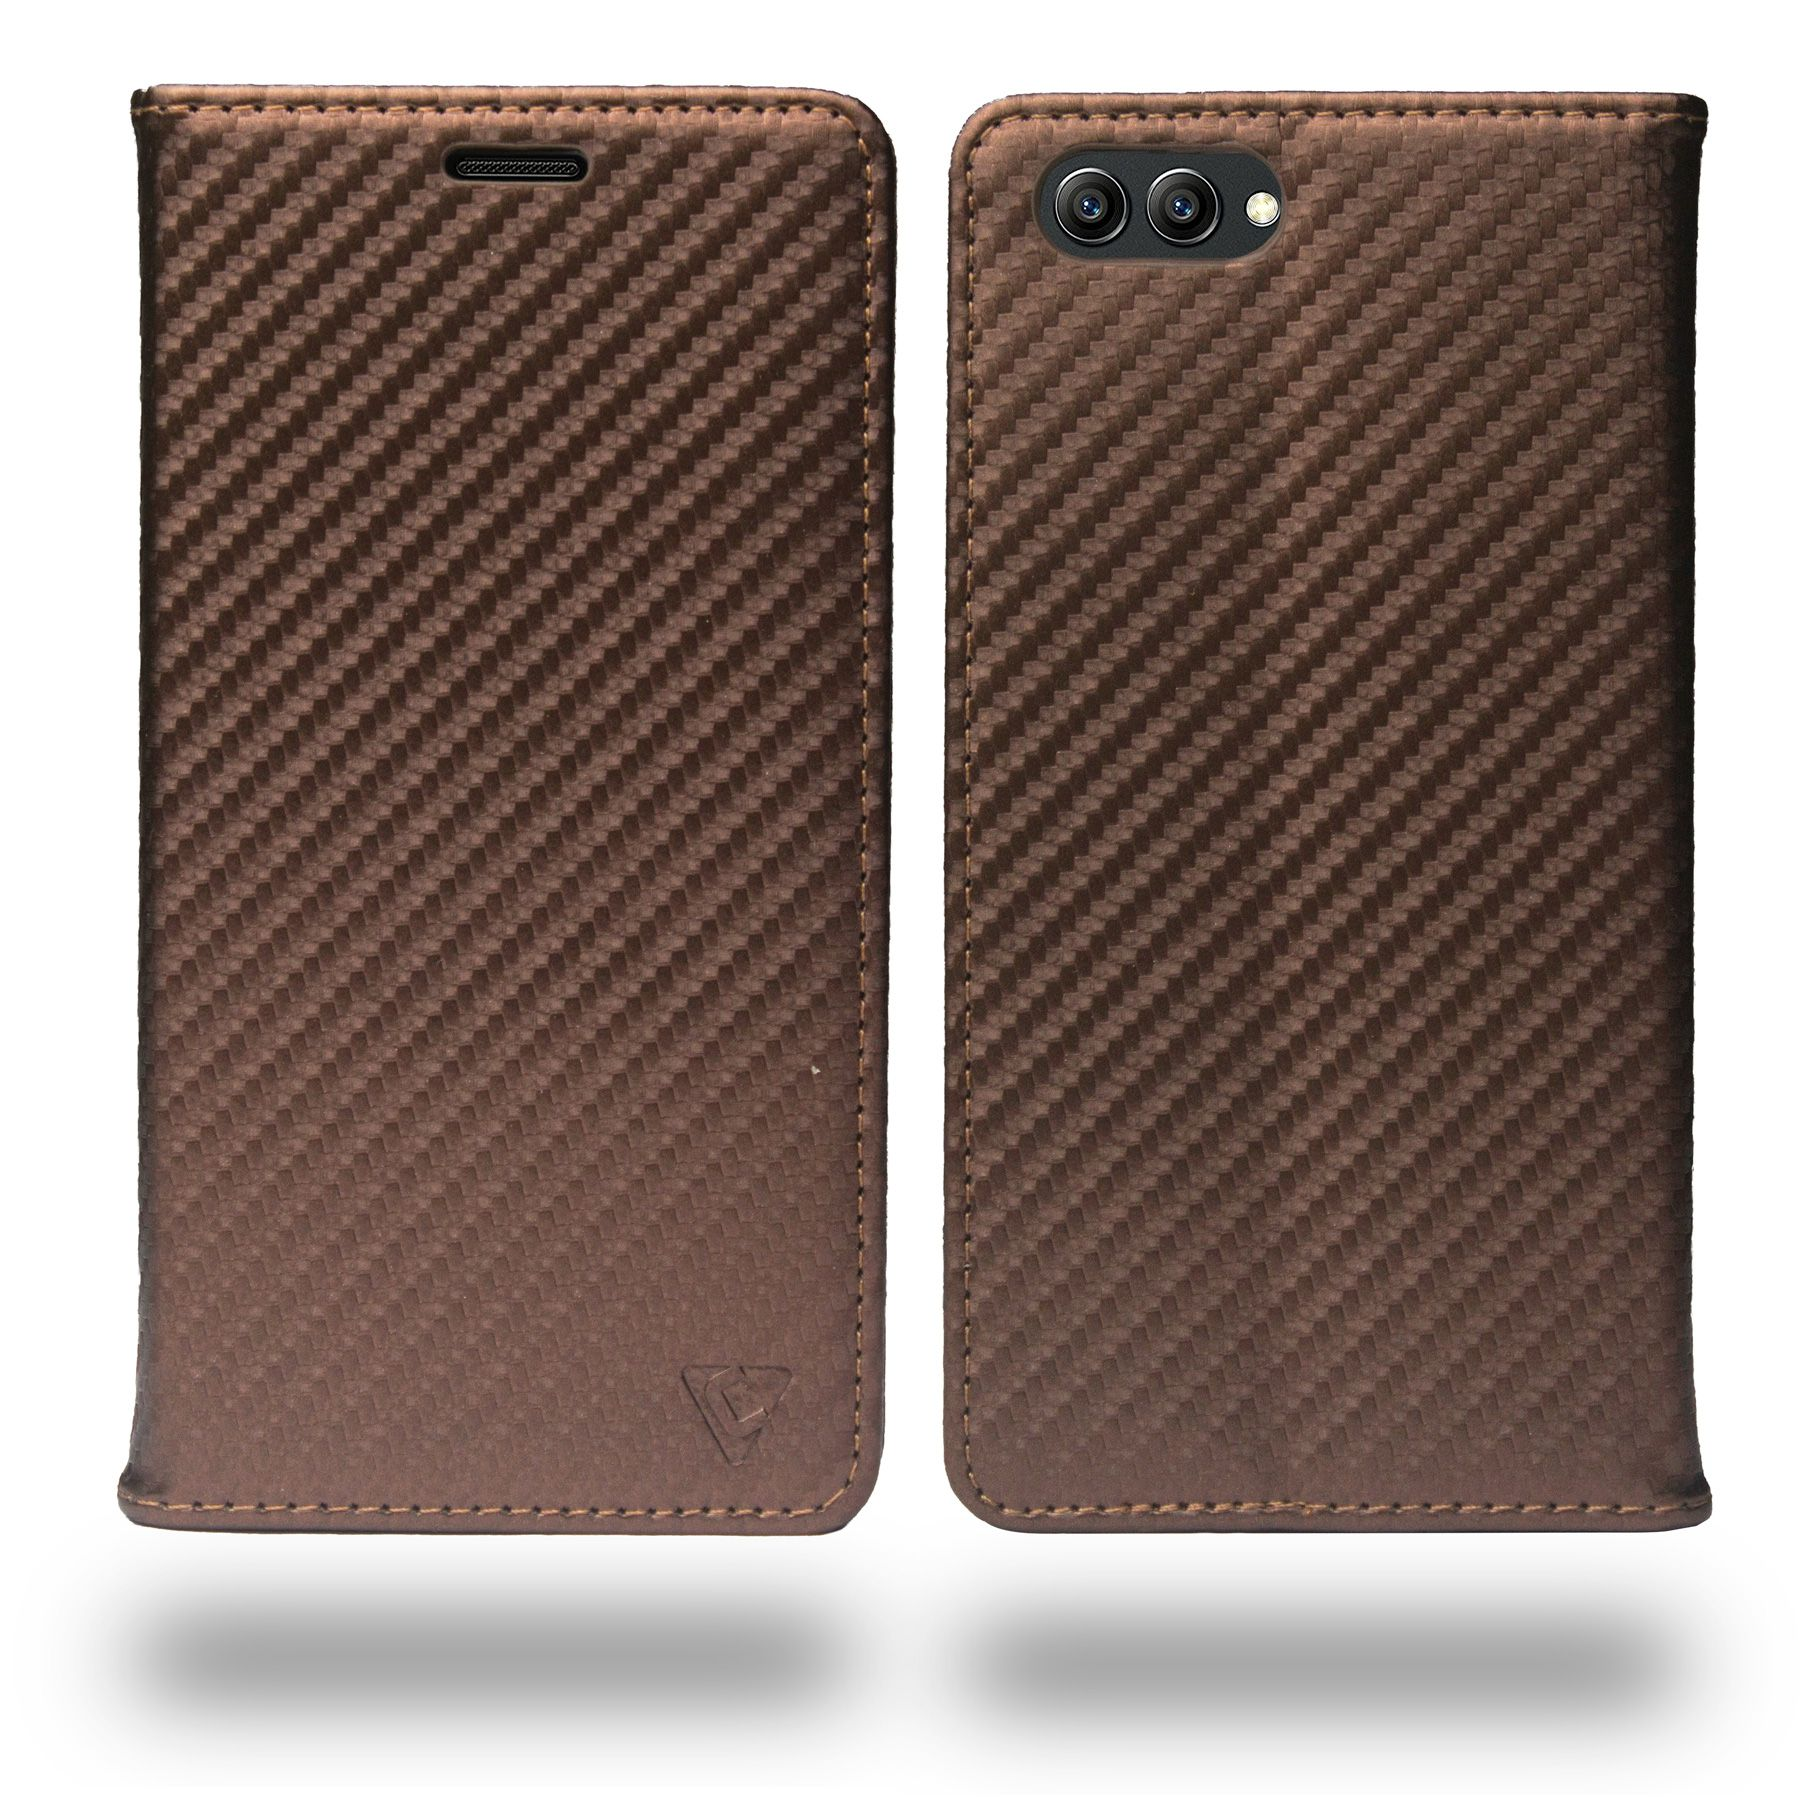 save off bea81 3a1bb Huawei Honor View 10 Flip Cover by Ceego - Brown